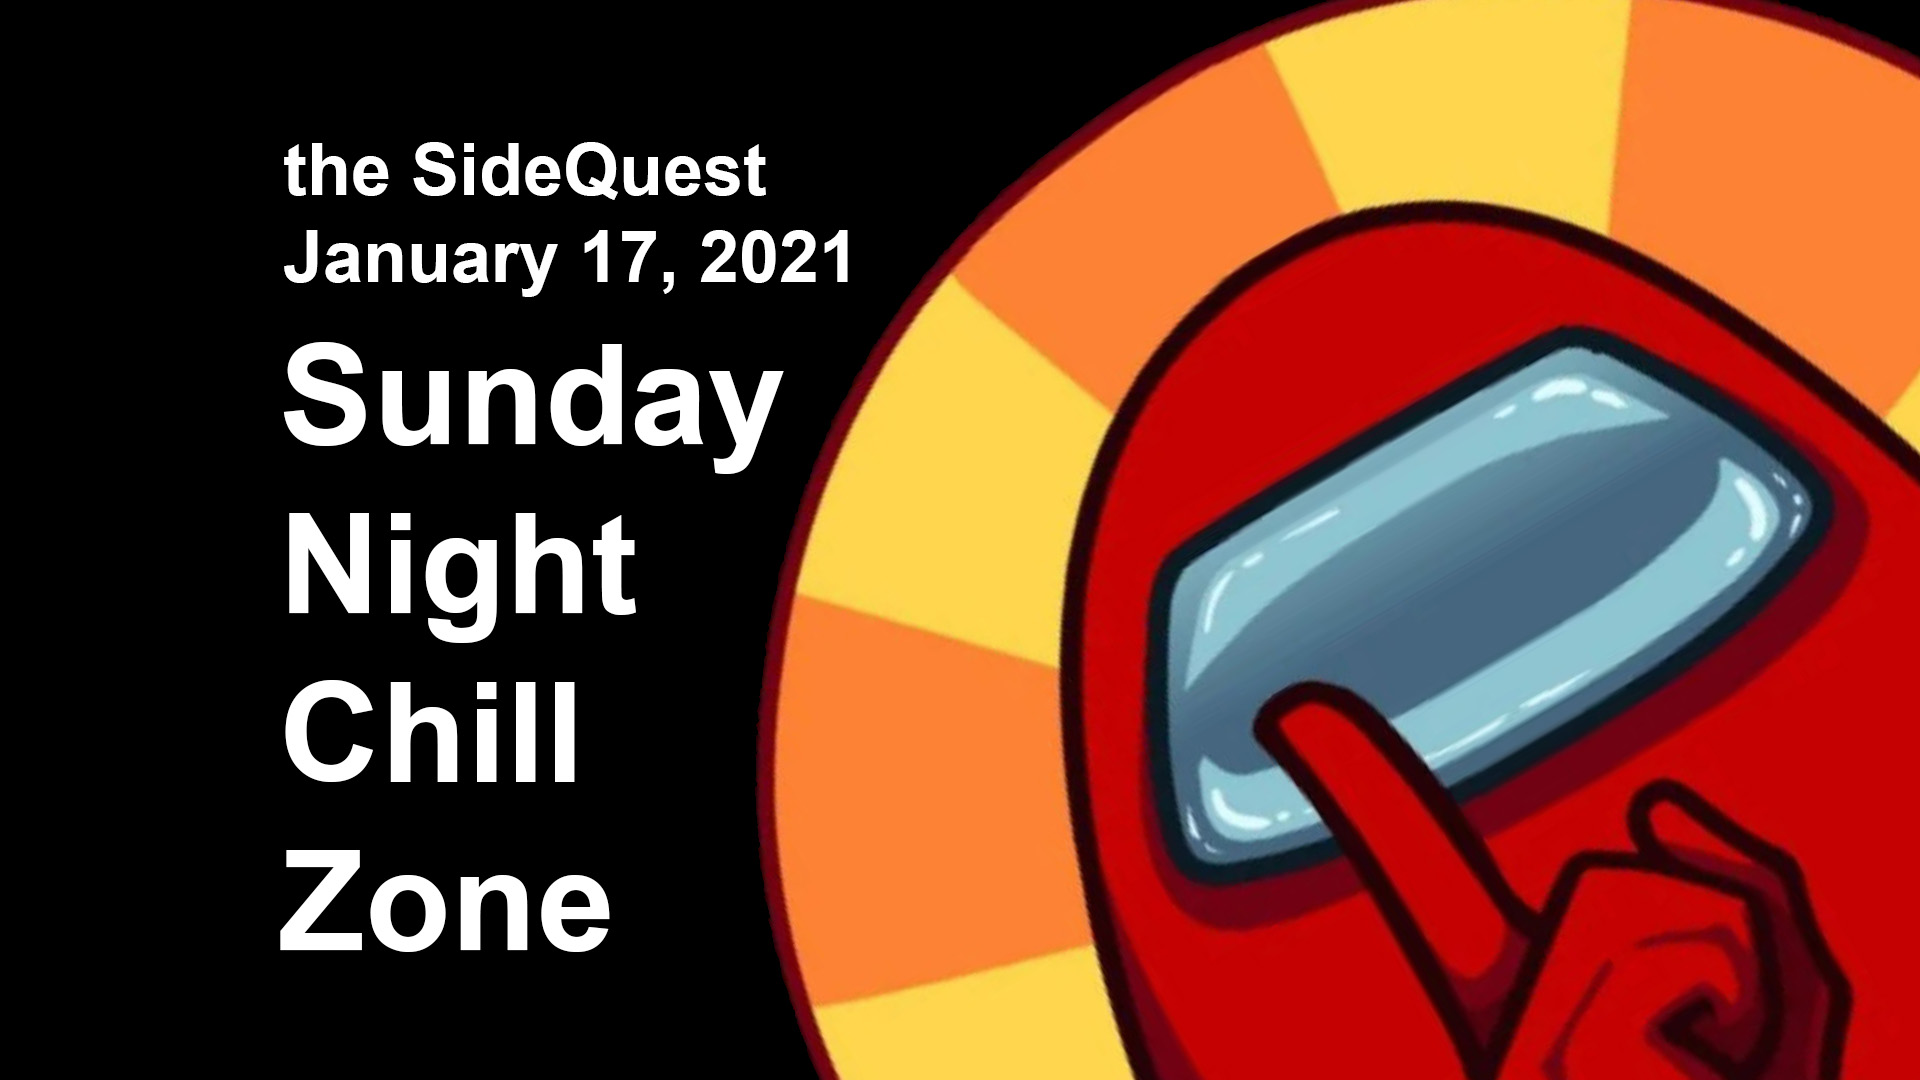 The SideQuest LIVE! January 17, 2021: Sunday Night Chill Zone